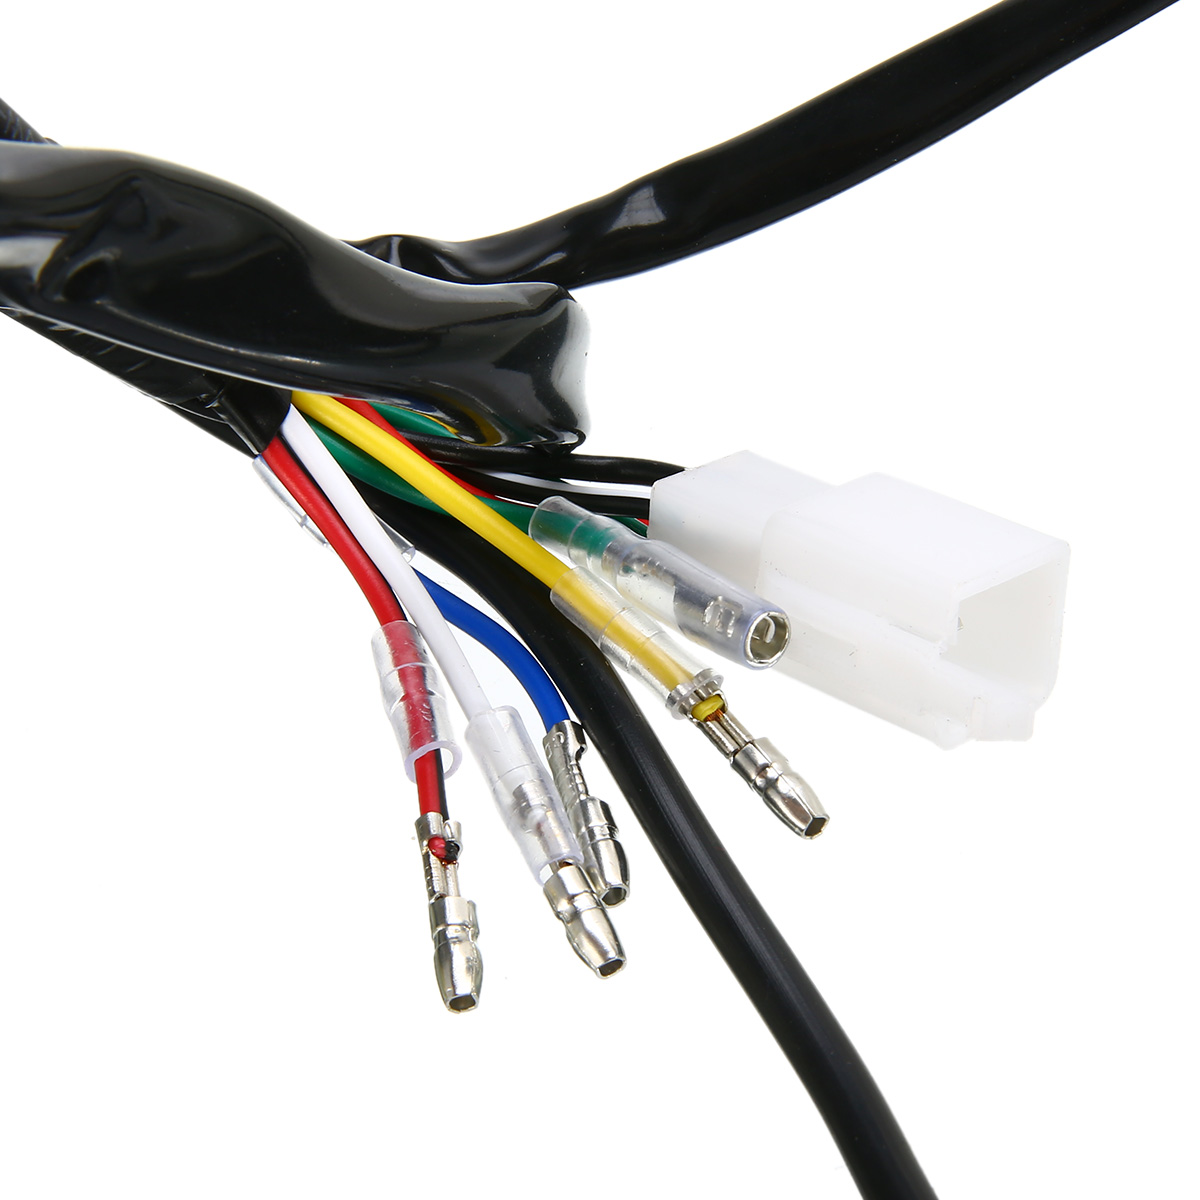 Atv,rv,boat & Other Vehicle Humor Engine Wire Wiring Harness Loom 50cc 110cc 125cc Pit Quad Dirt Bike Atv Buggy